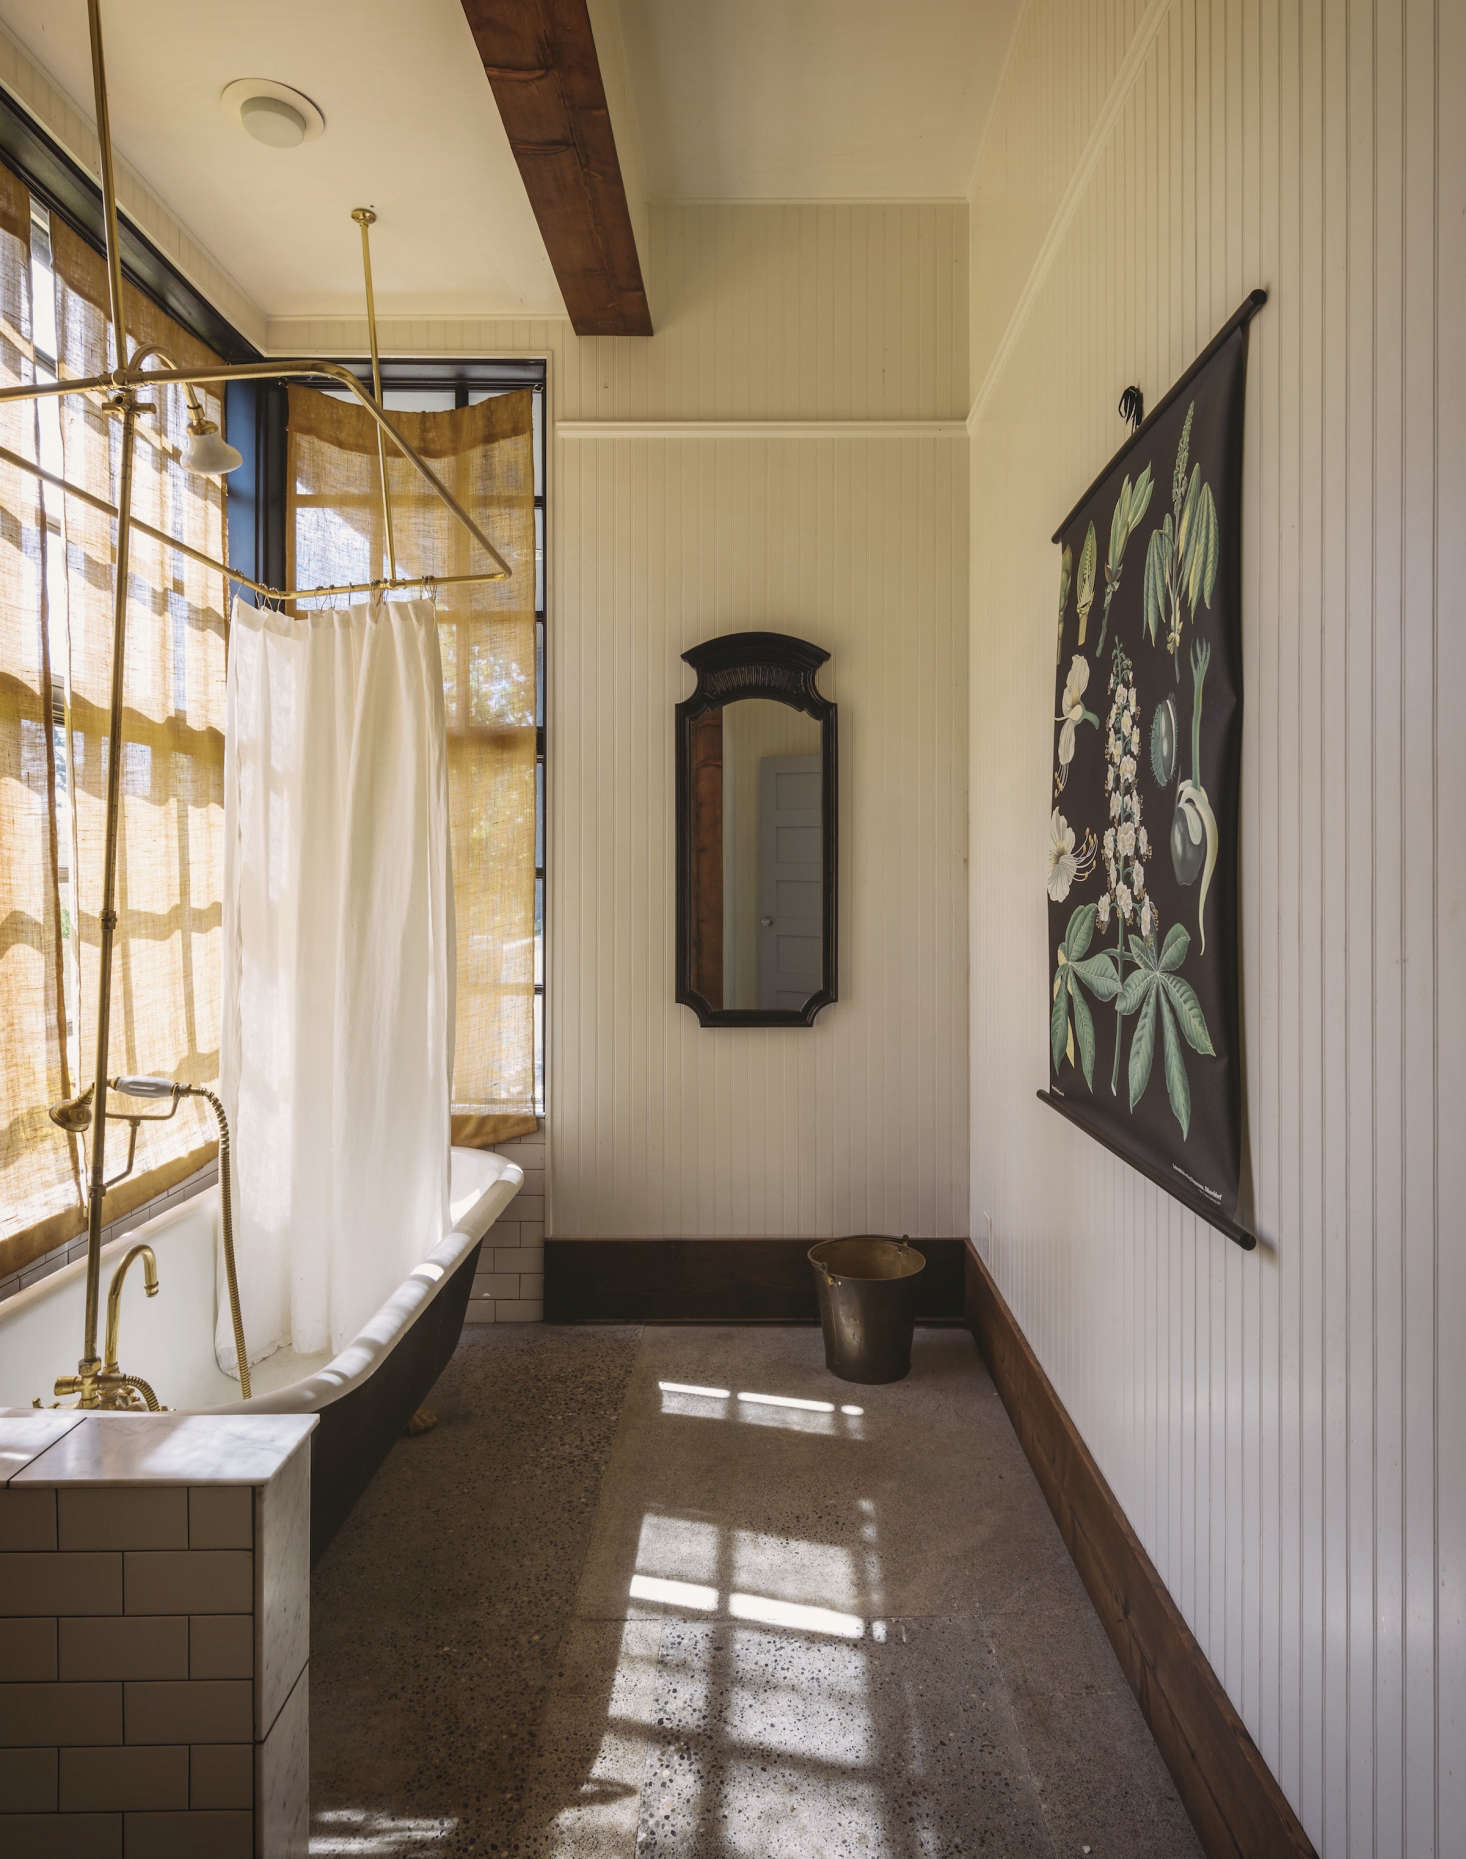 When Seattle chef Matt Dillon remodeled a bathroom at his farm onVashon Island, Washington, its concrete floor was preexisting but needed to be demoed when plumbing was added. Dillon and his contractor patched the floor and polished it with acid etching. See more in Bathroom of the Week: A Vintage Bath on Old Chaser Farm on Vashon Island, Washington. Photograph by Aaron Leitz for Remodelista.